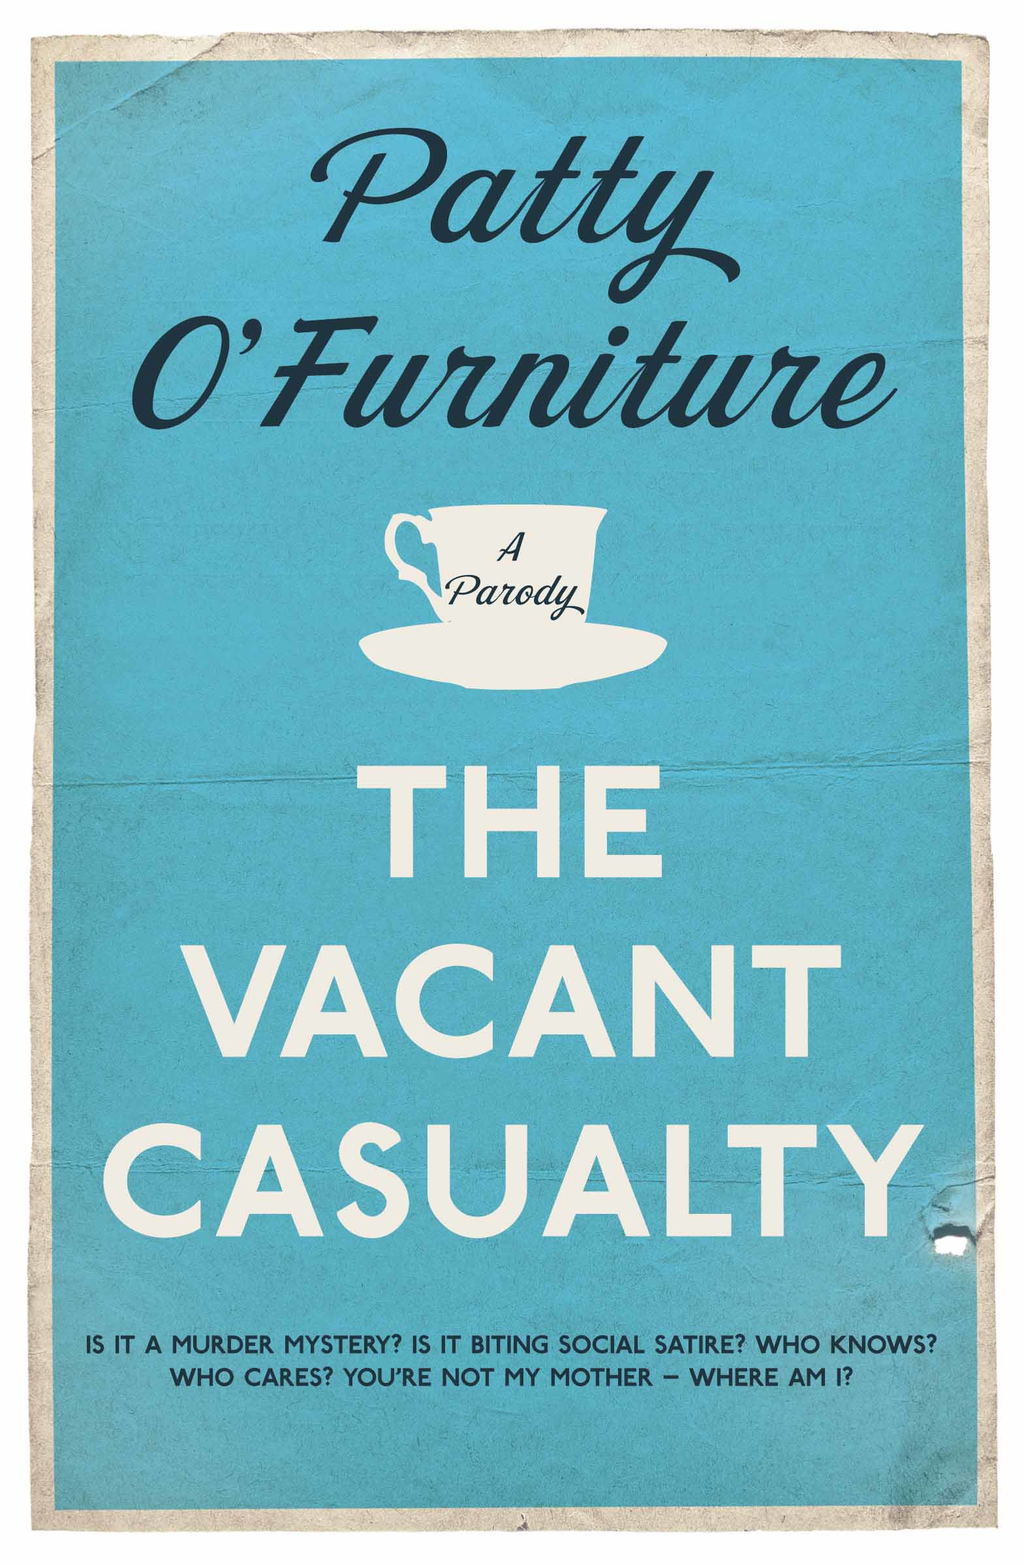 The Vacant Casualty A Parody